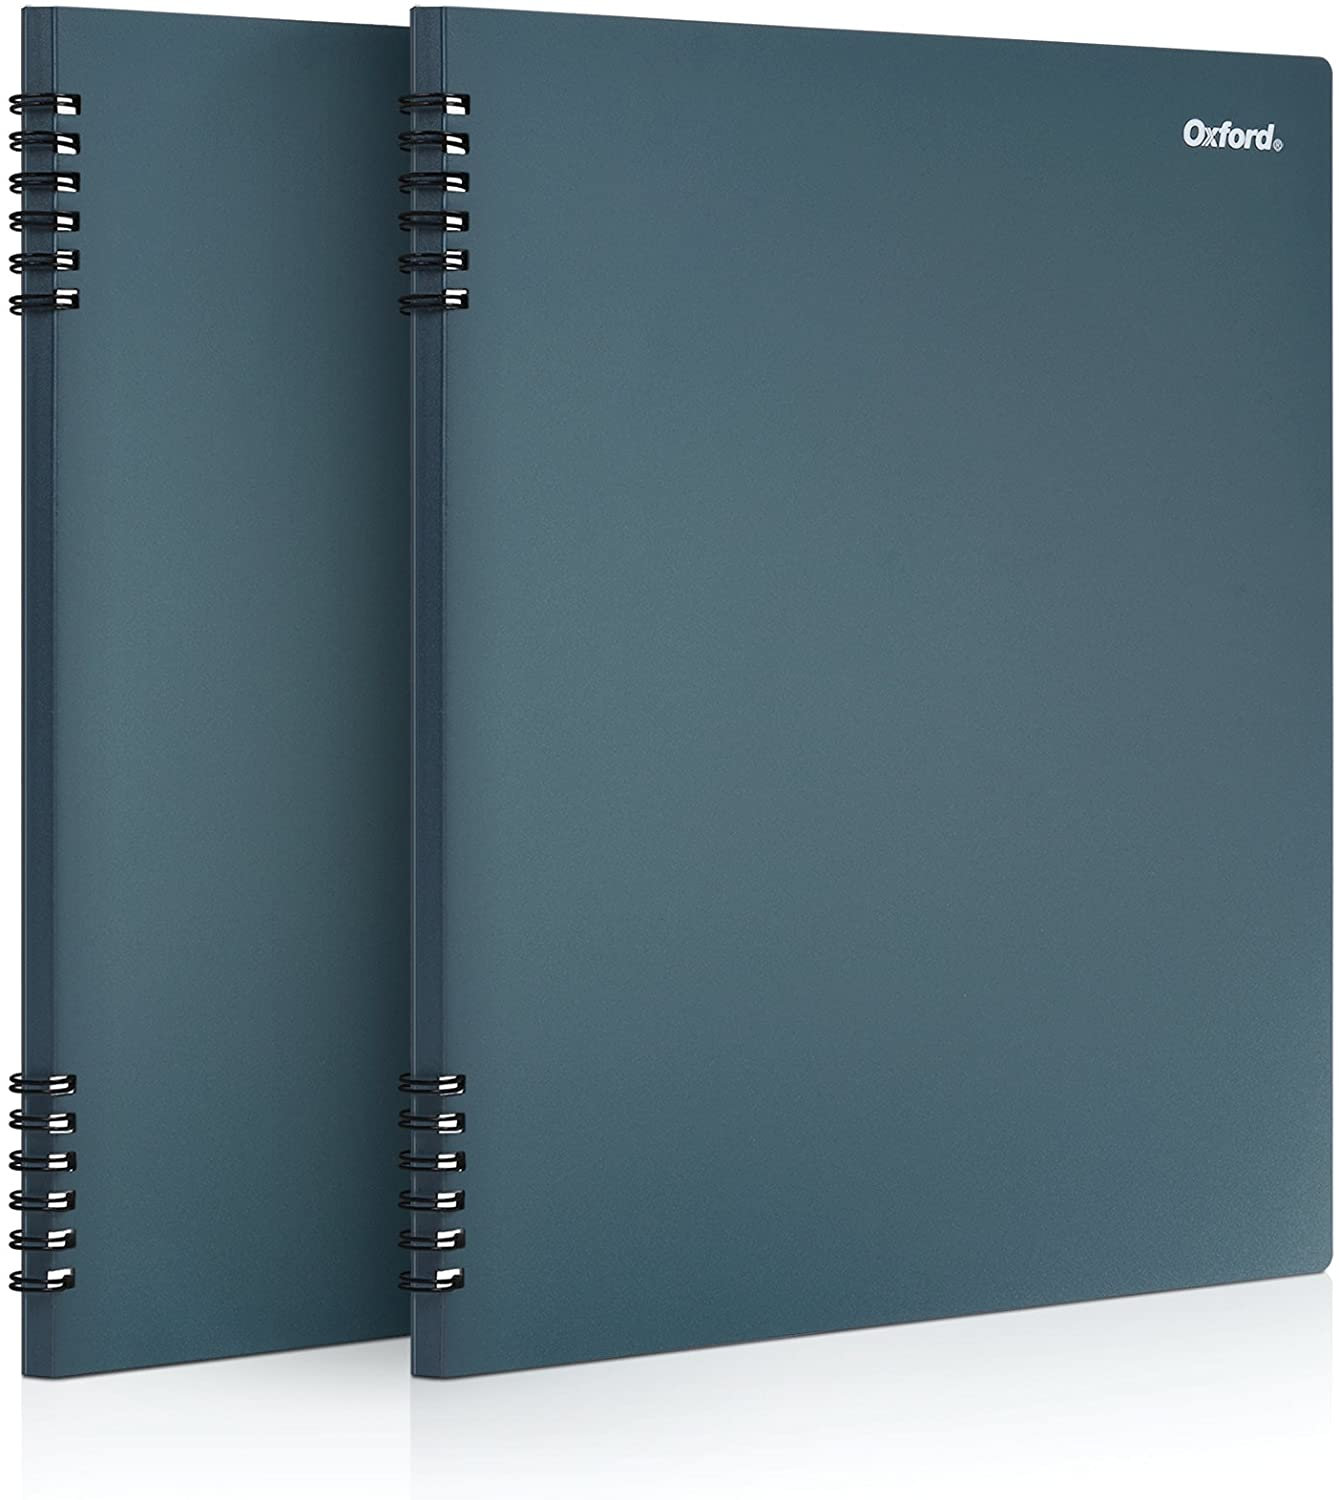 "Oxford Stone Paper Notebook, 8-1/2"" x 11"", Blue Cover, 60 Sheets, 2 Pack (161646)"